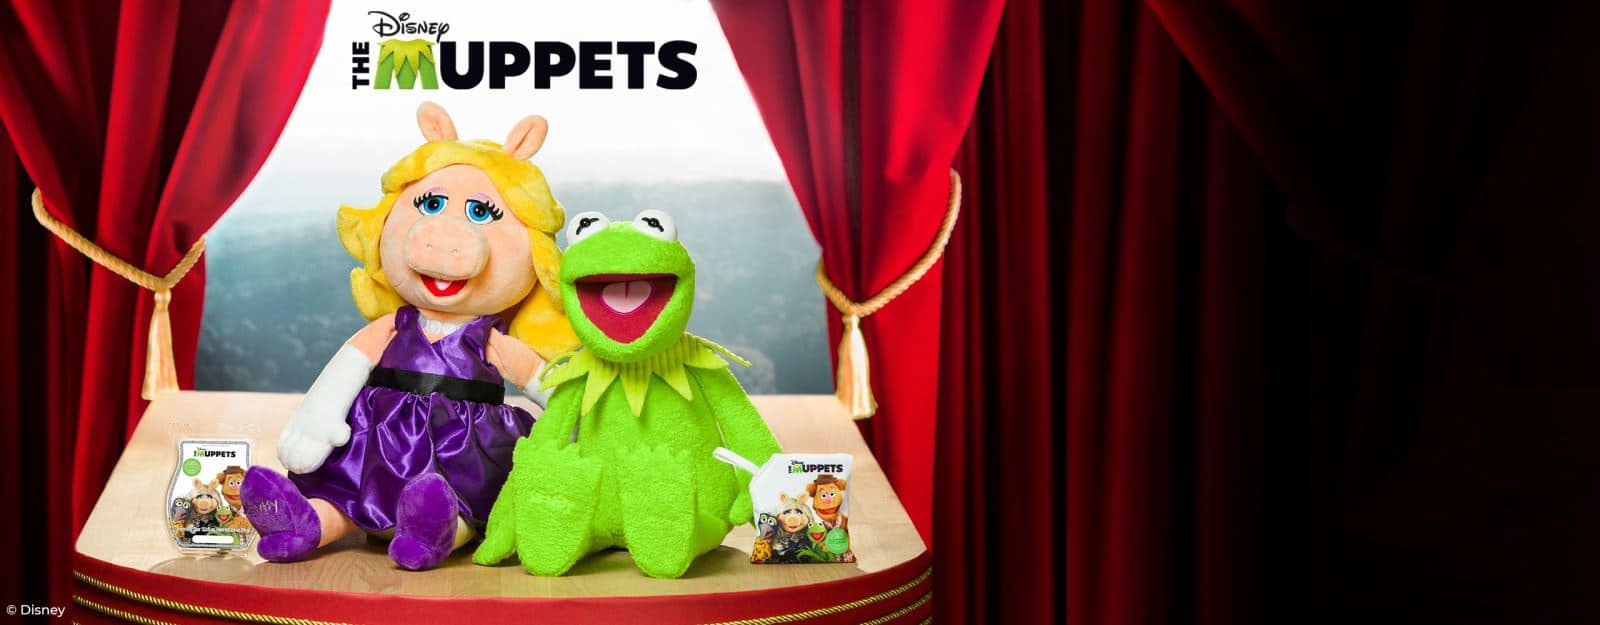 The Muppets Collection Hero